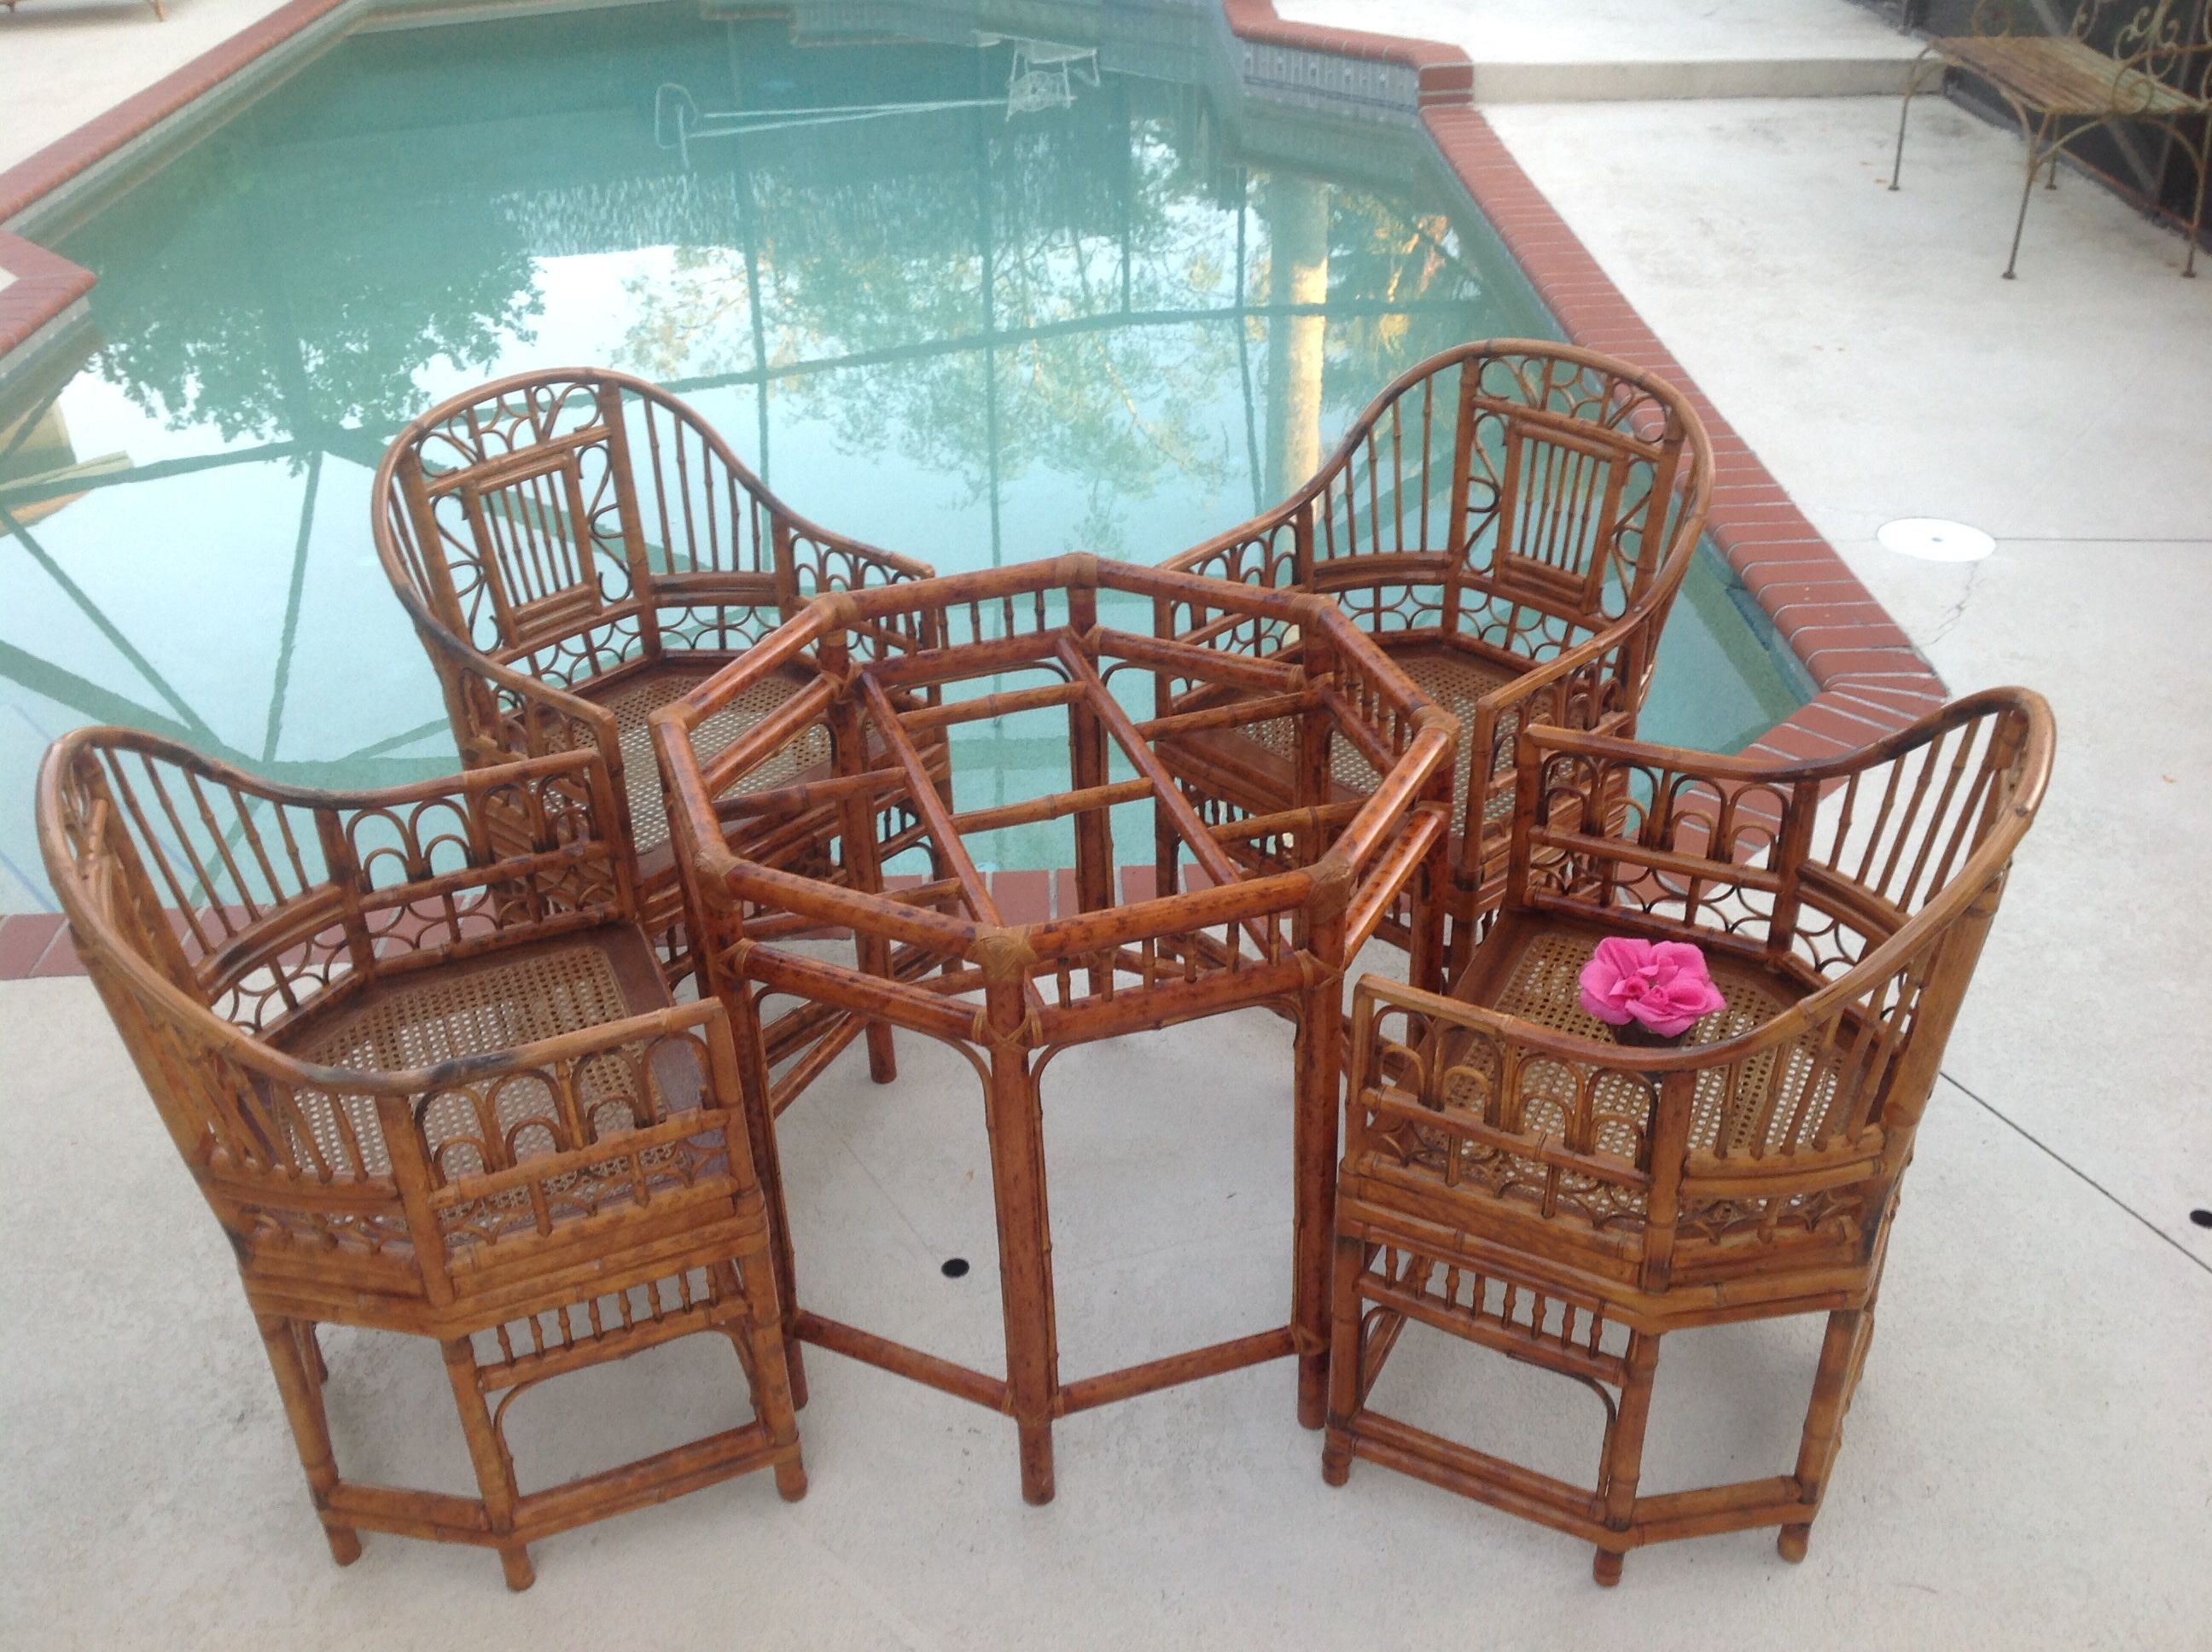 BAMBOO BRIGHTON STYLE Chairs / Set Of 4 Chinese Chippendale Rattan Chairs  Cane Seats Chinoiserie Pavillion Style Chairs At Retro Daisy Girl By ...